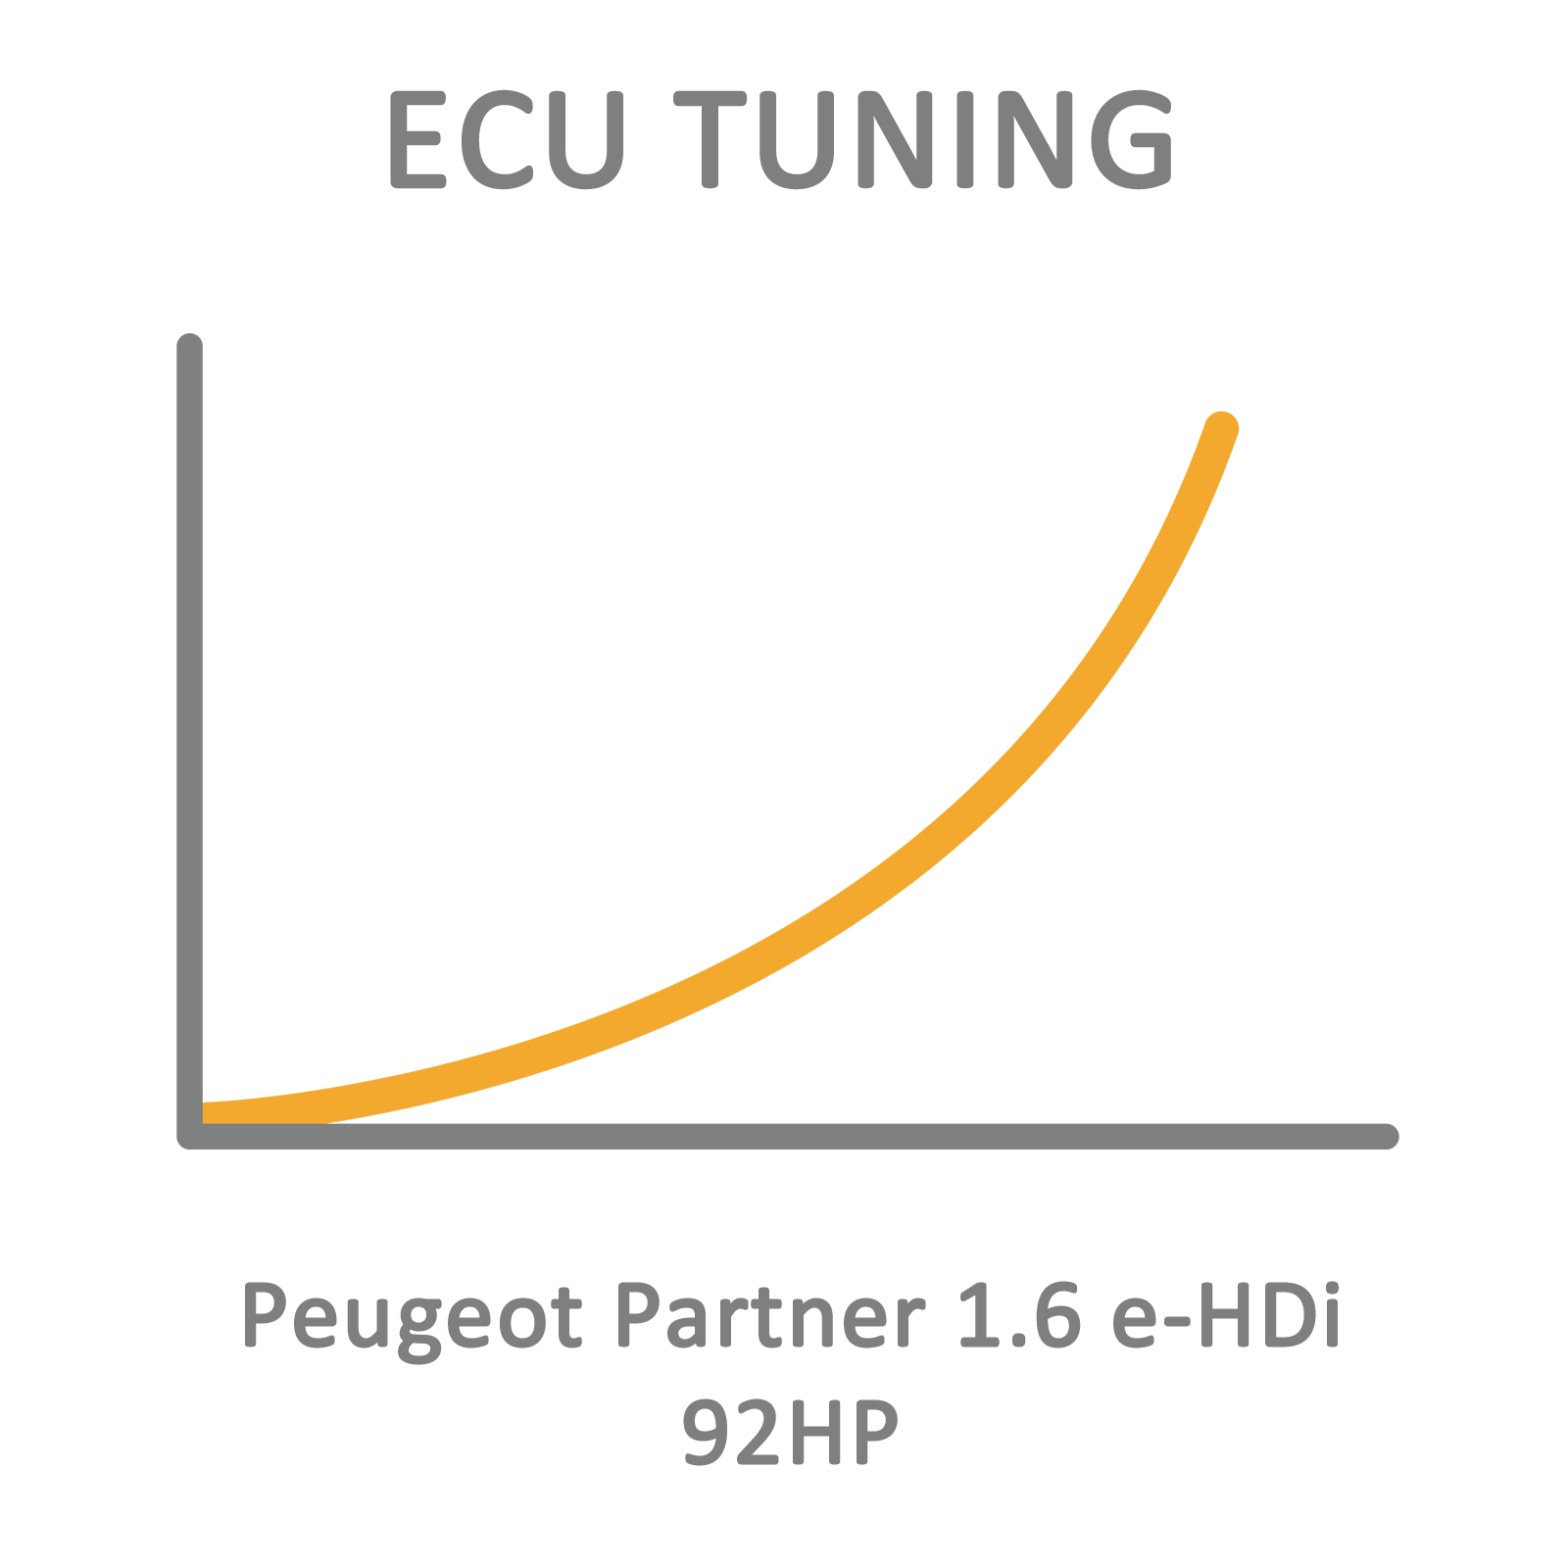 Peugeot Partner 1.6 e-HDi 92HP ECU Tuning Remapping